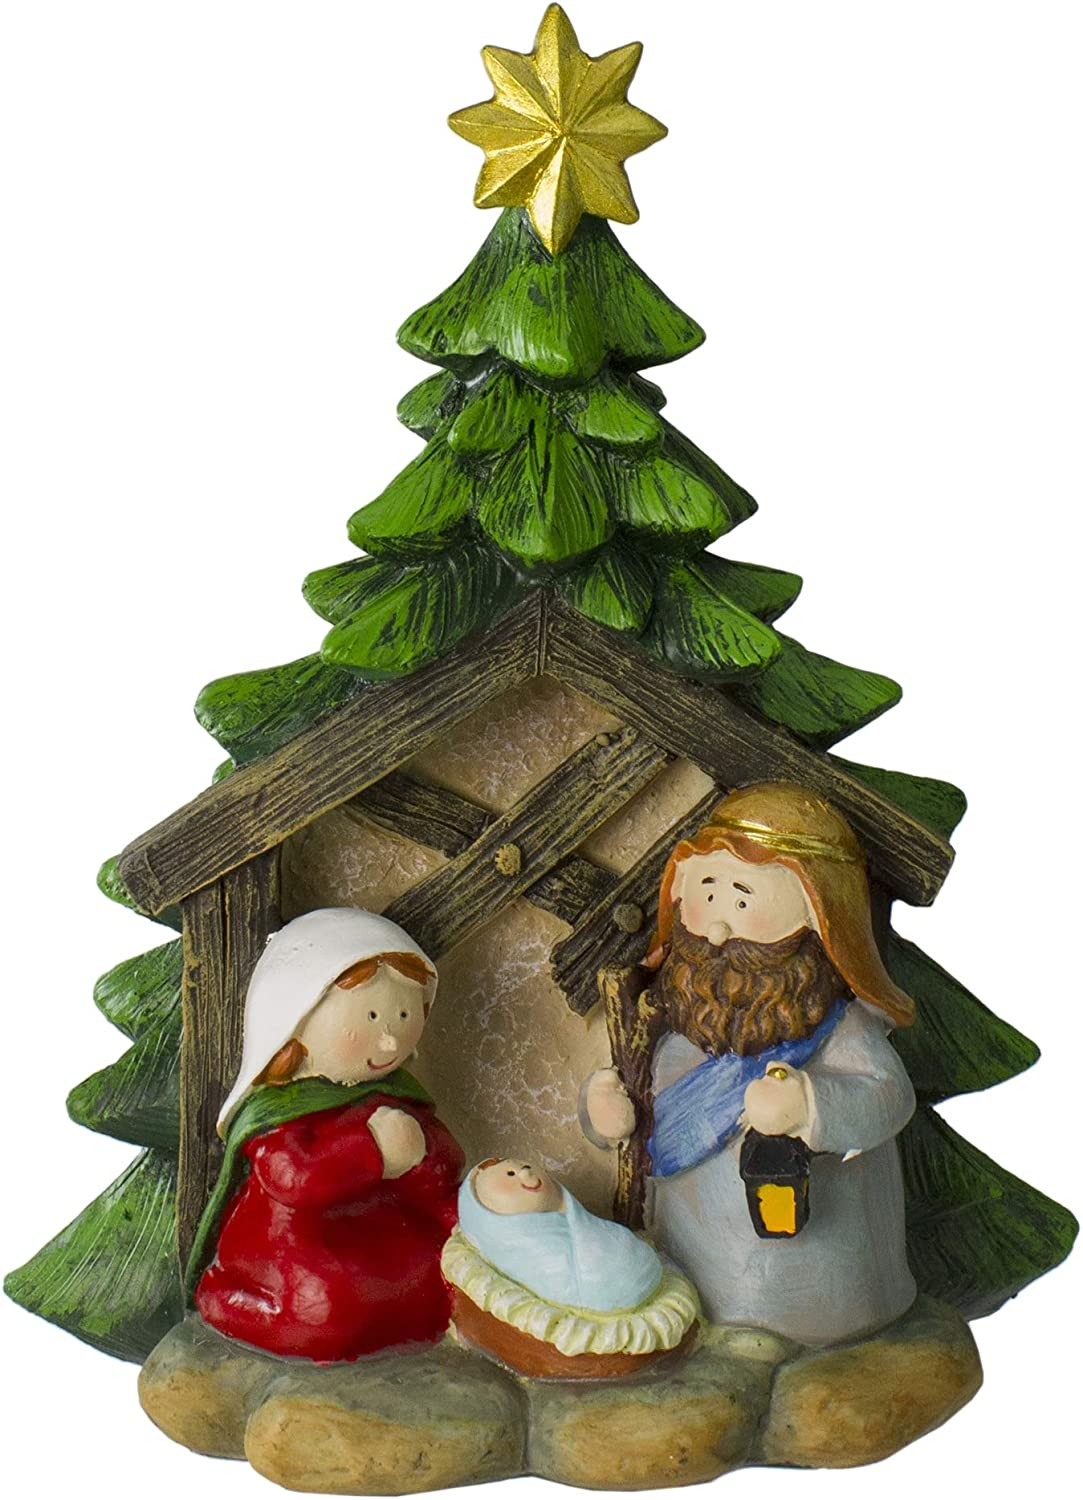 Northlight Nativity Scenes Sets Limited time for free shipping and Award Green